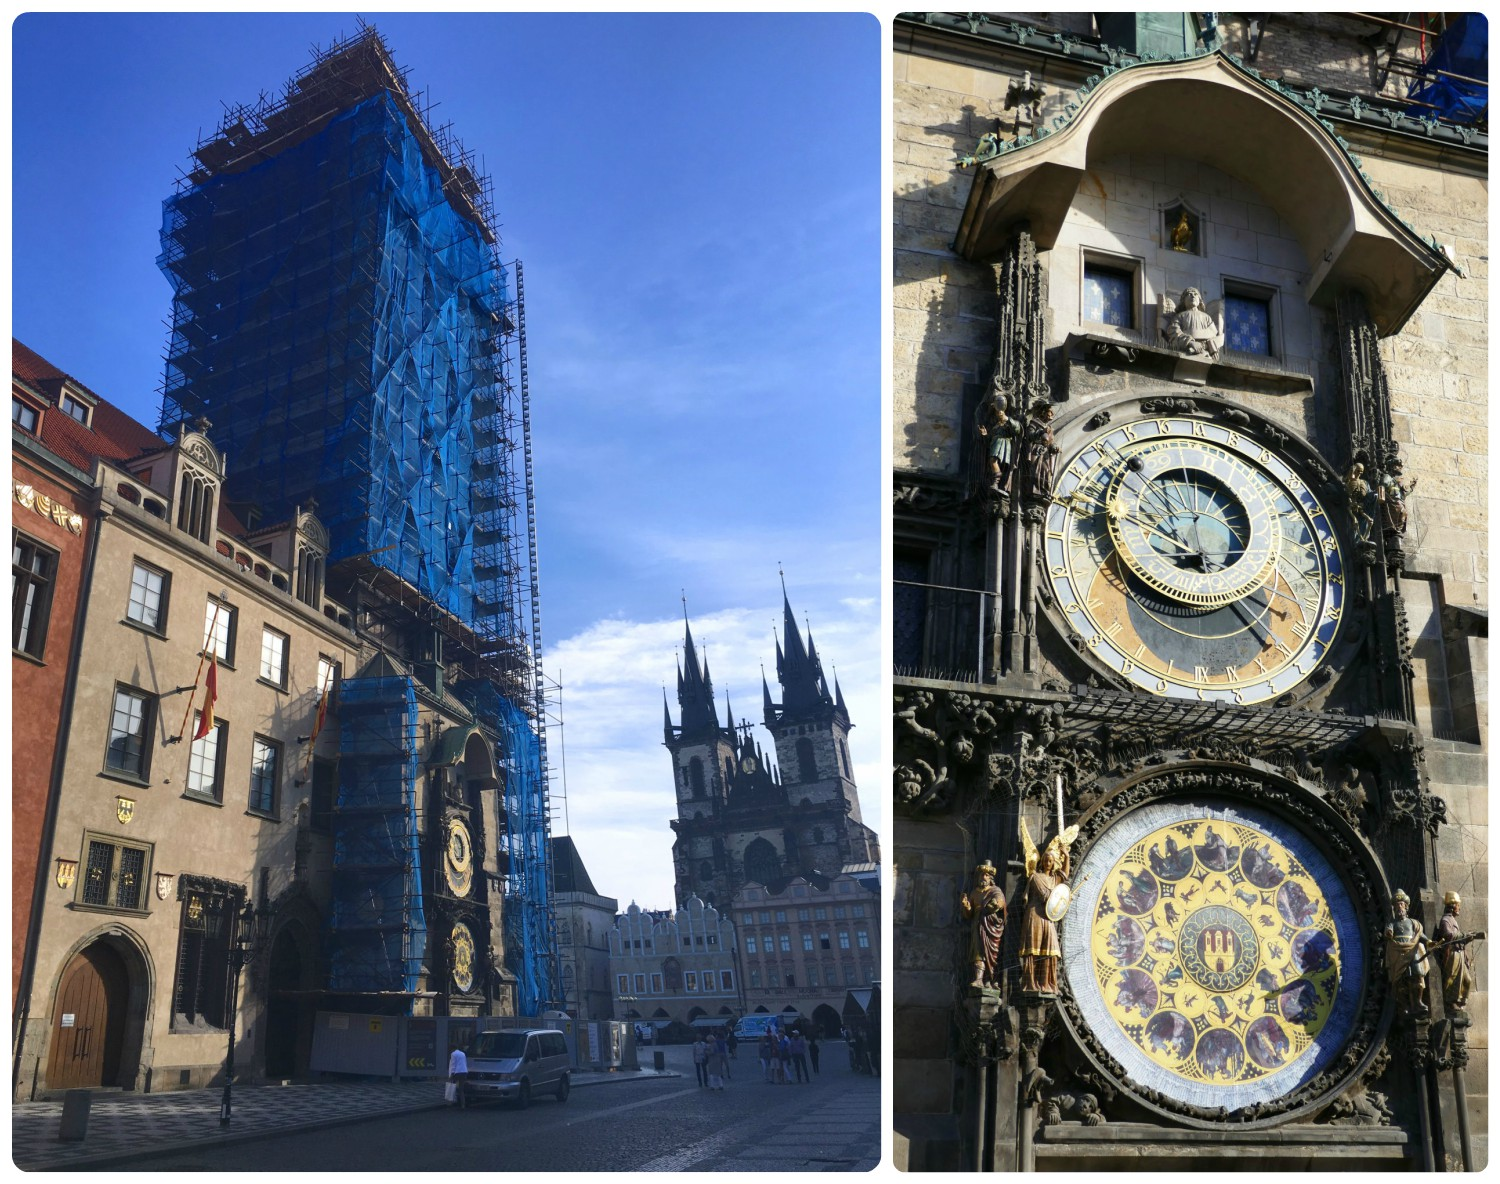 Sadly, the Astronomical Clock in Old Town Square Prague was under renovation. However, we were grateful that we were still able to admire the exquisite detail of the clock!